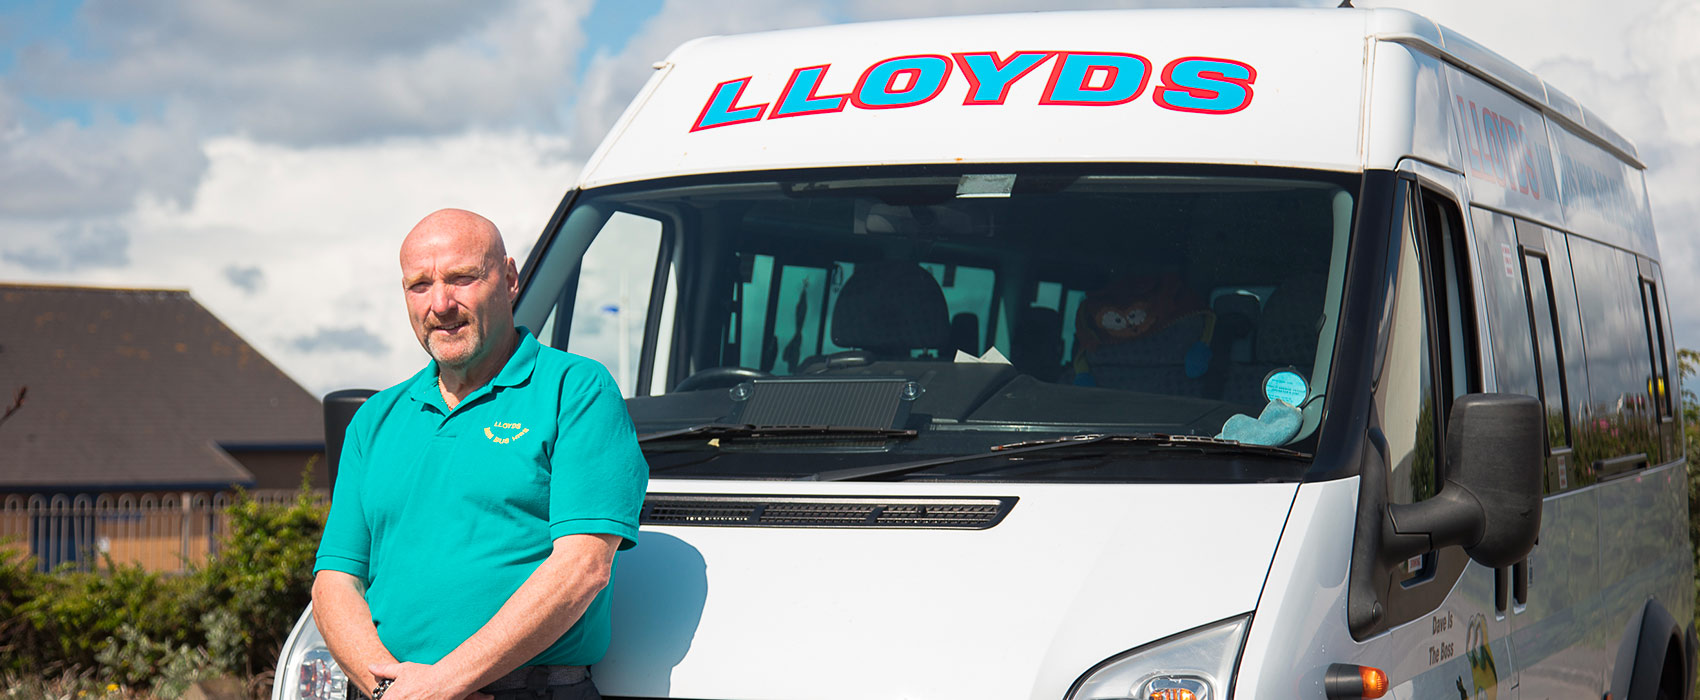 PML Supporting David of Lloyds Mini Bus Hire